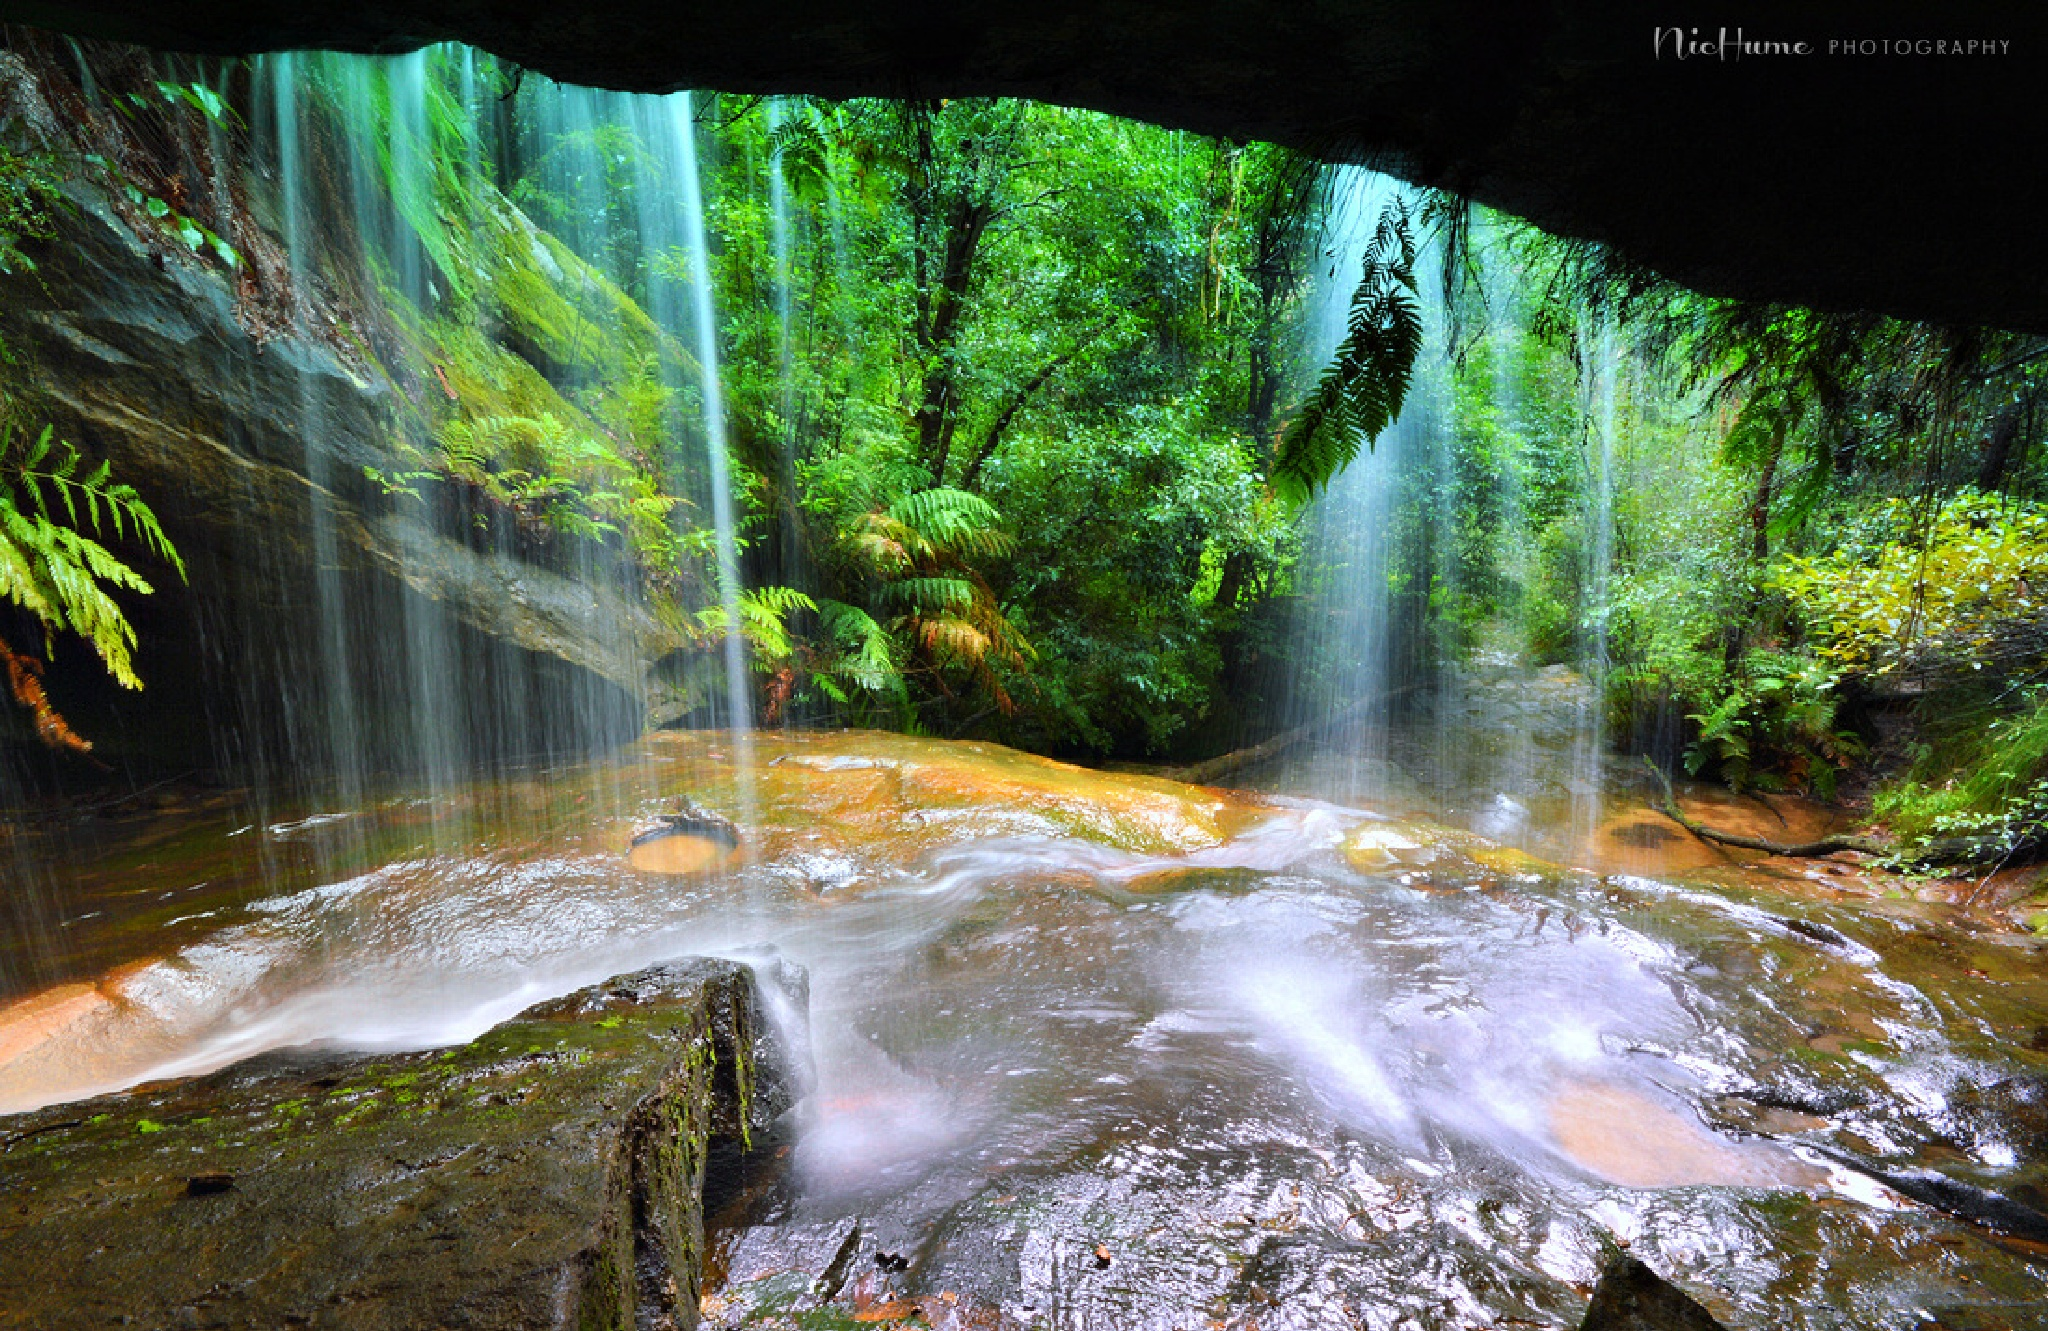 Behind the waterfall by nichumephotography